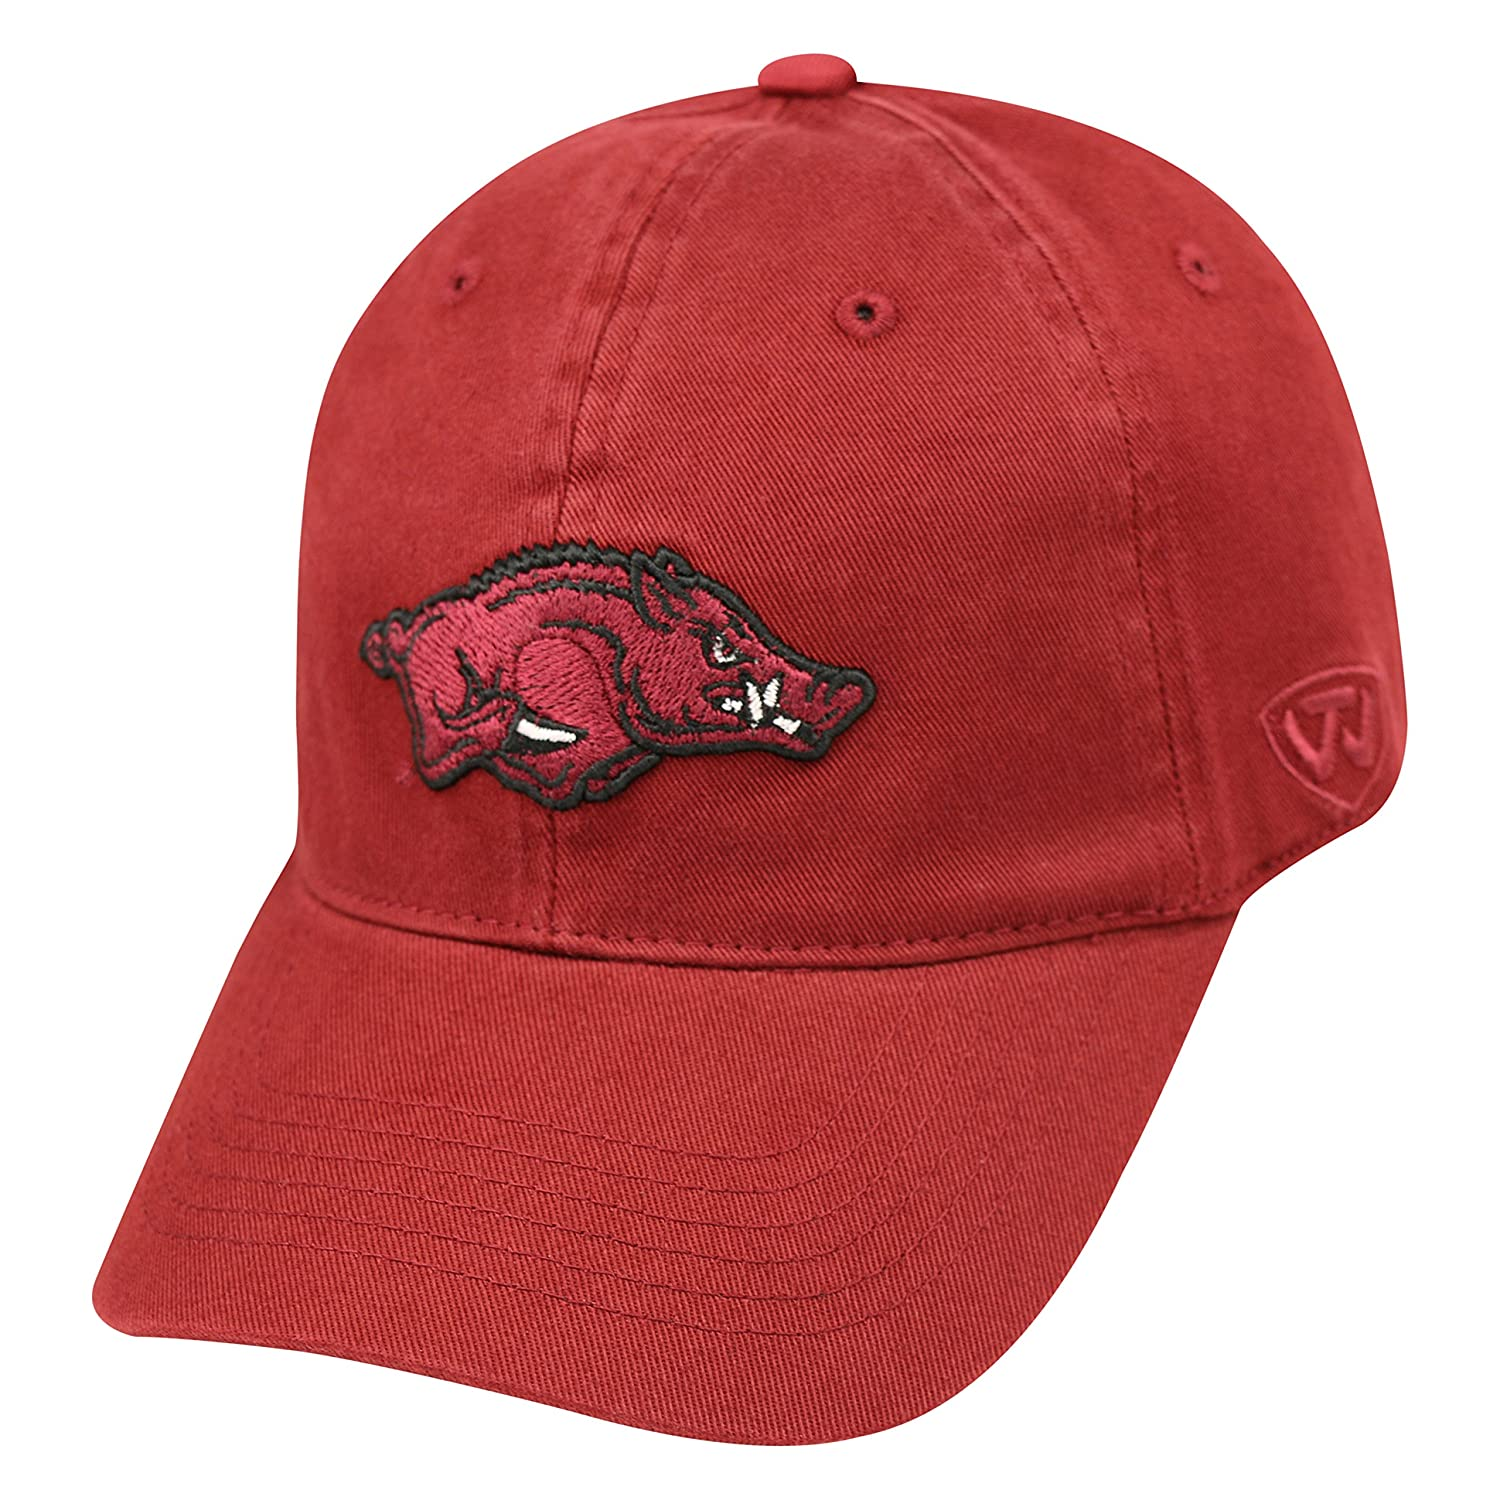 Arkansas Razorbacks Official NCAA One Fit Relaxer by Top of the World 739403